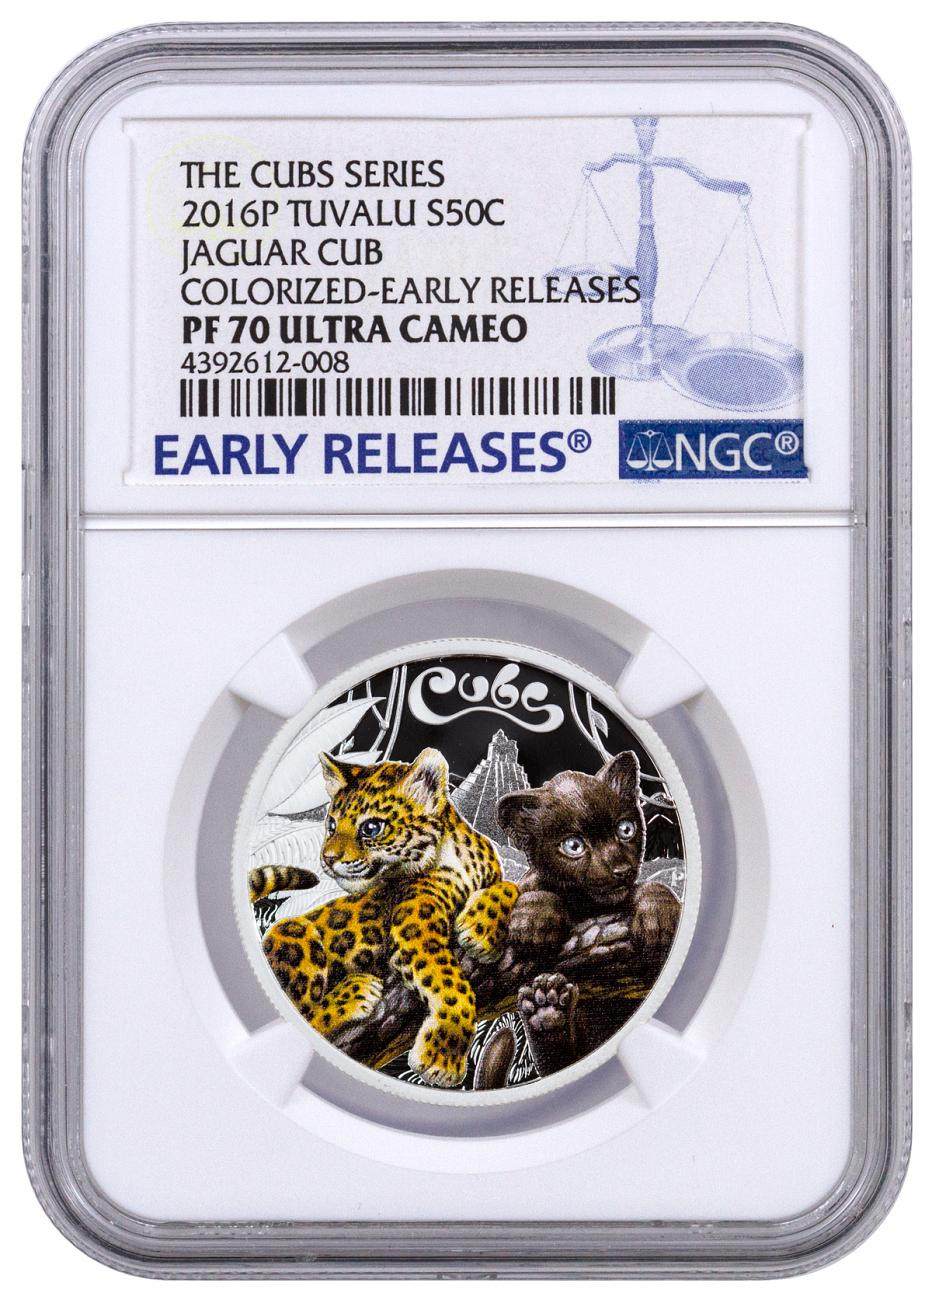 2016-P Tuvalu 50c 1/2 oz. Colorized Proof Silver Jaguar Cubs - NGC PF70 UC Early Releases